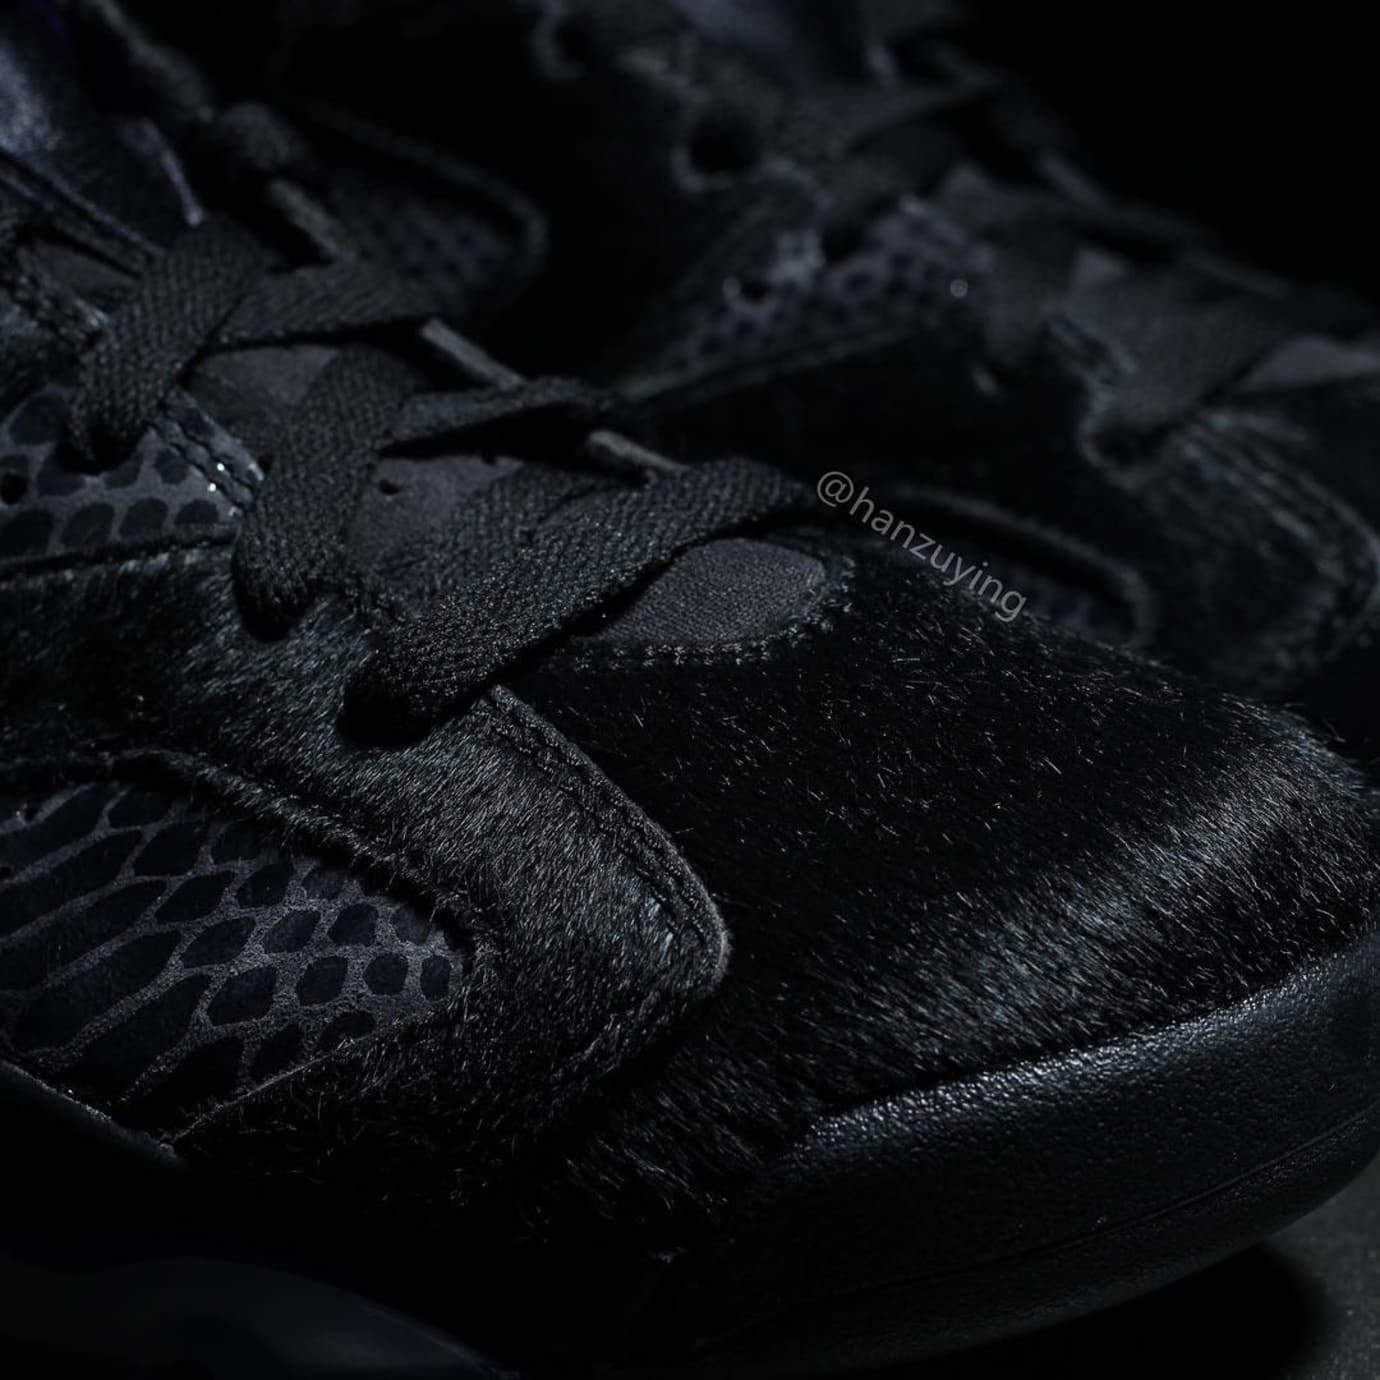 1bcdfb7b492 Air Jordan 6 VI Cow Fur Snakeskin Black Purple Release Date AR2257-005 Toe